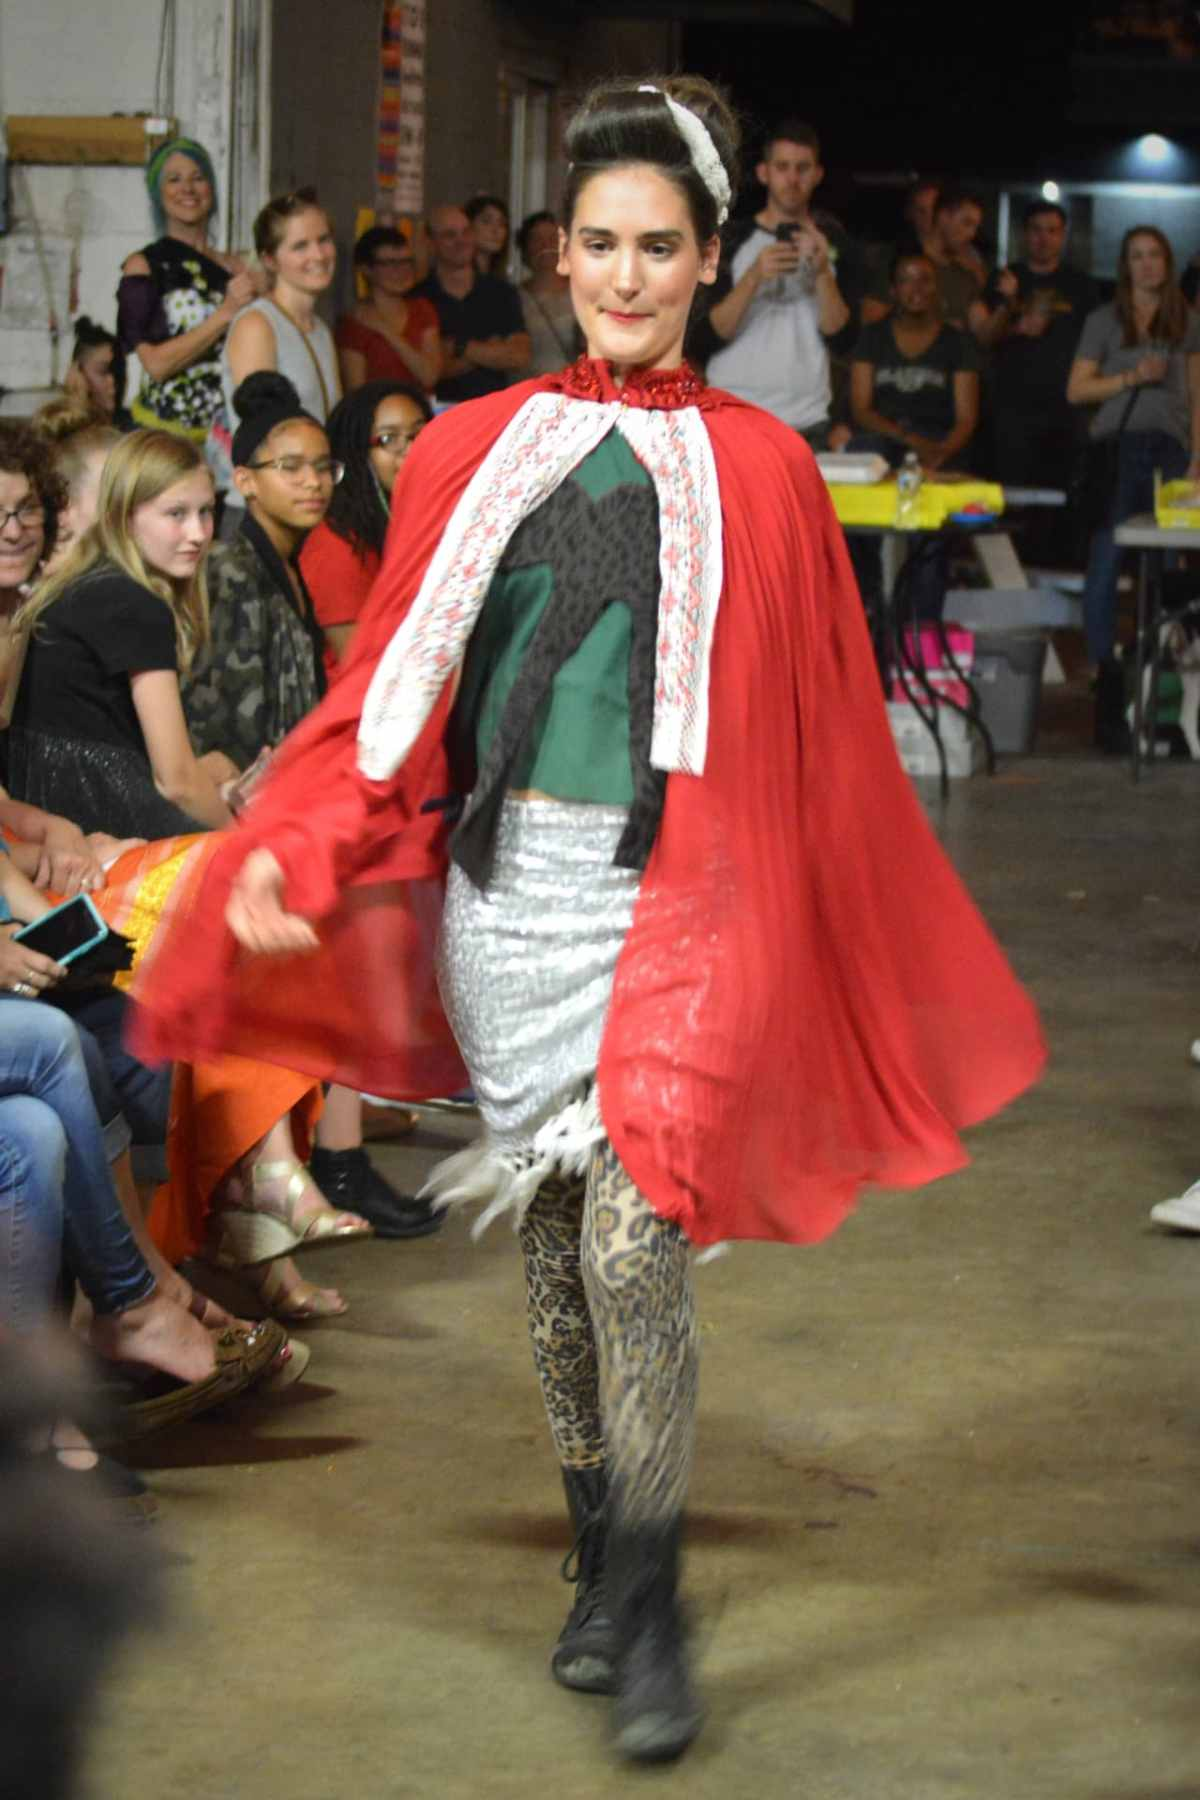 Thrift Store Runway show raises money for the Bib & Tucker Sew-Op